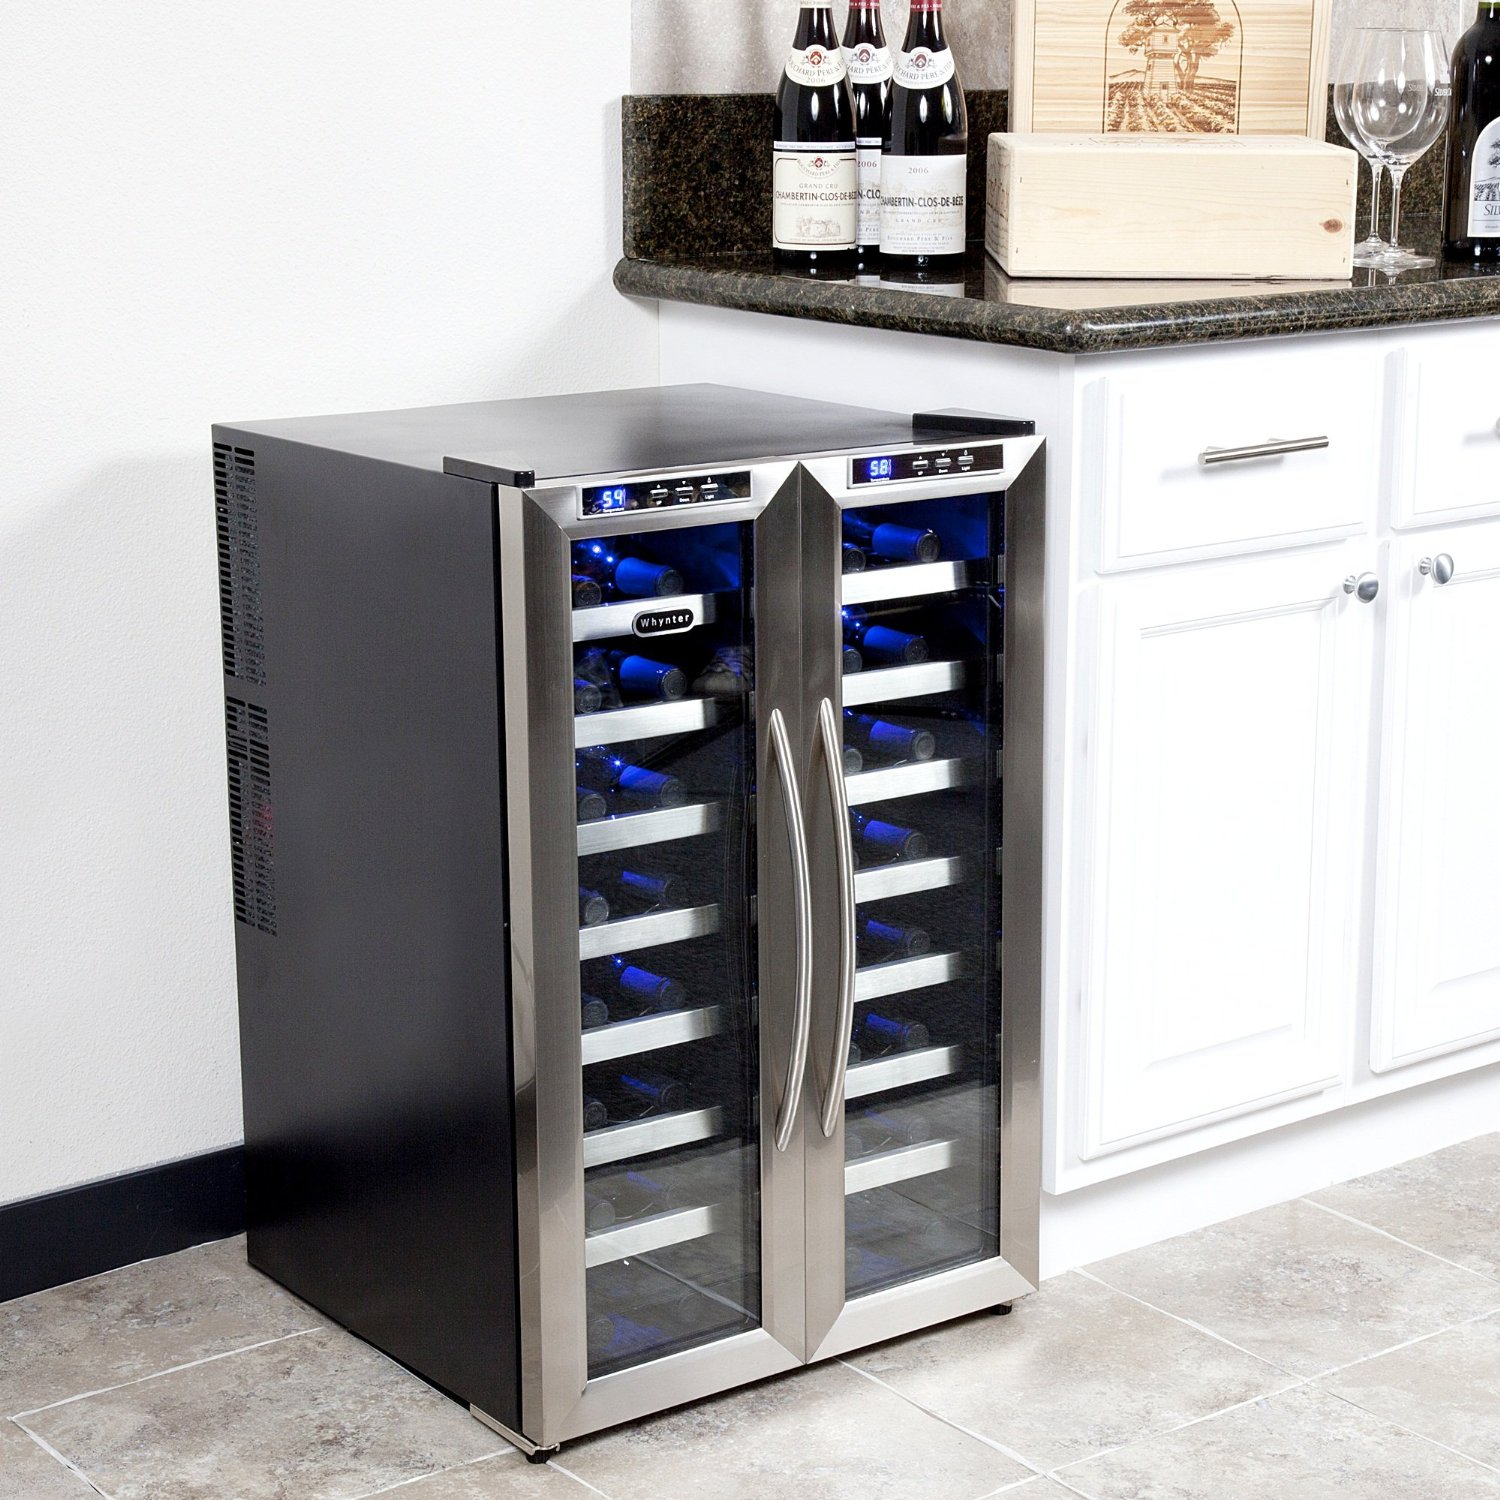 countertops kitchen refrigerator freestanding wayfair cooler countertop whynter pdx tabletop dual bottle reviews wine zone